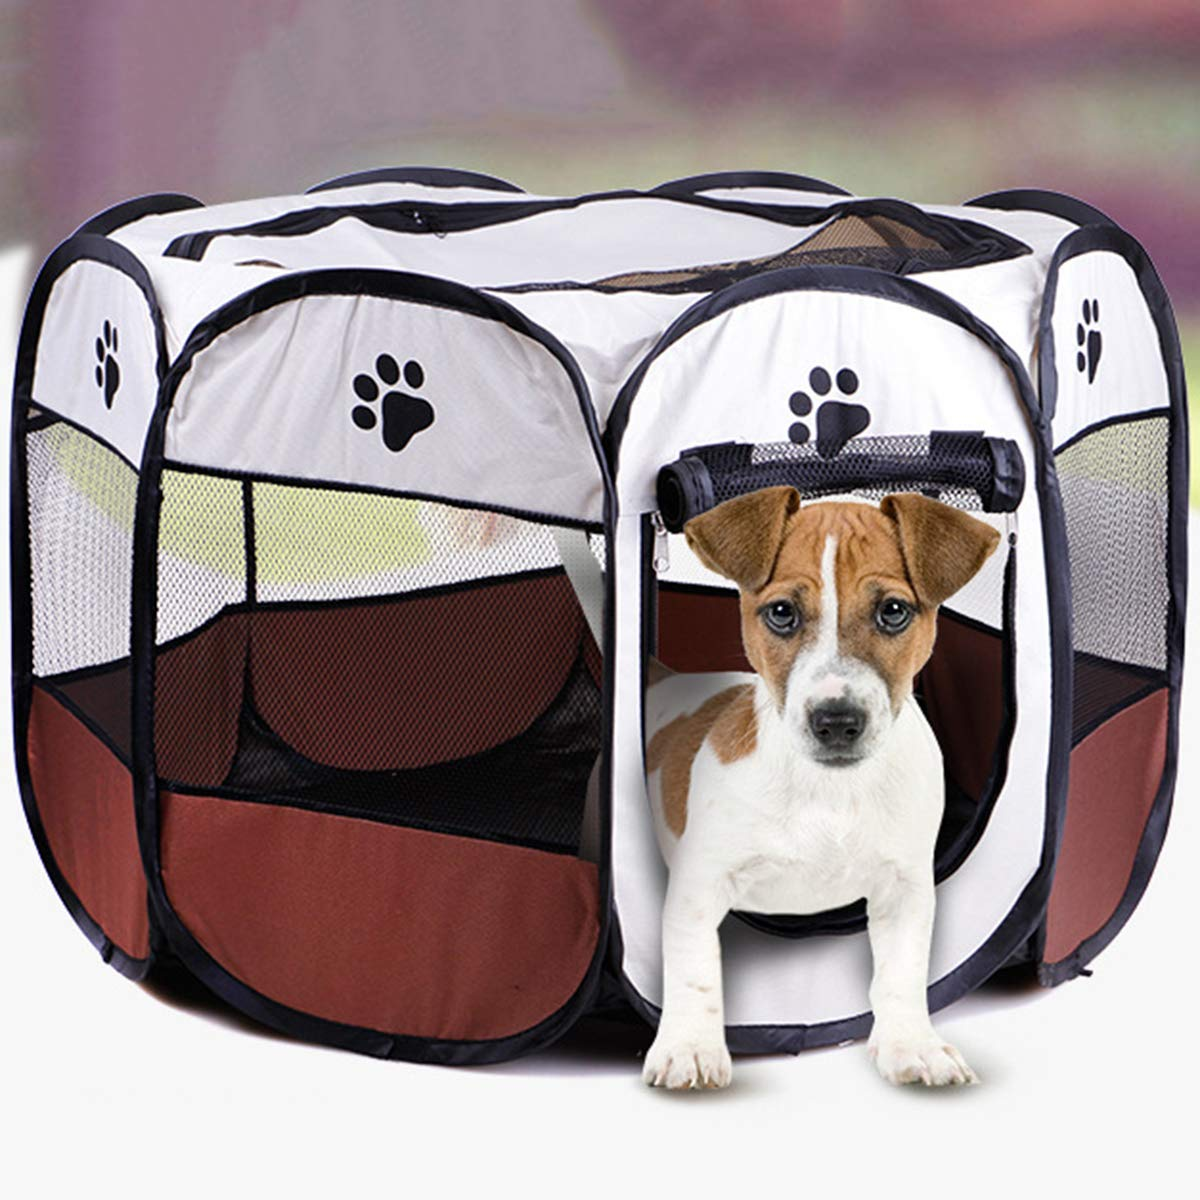 Foldable Washable Pet Tent Dog House Puppy Cat Cage Kennel Octagonal Fence Home Outdoor Supplies